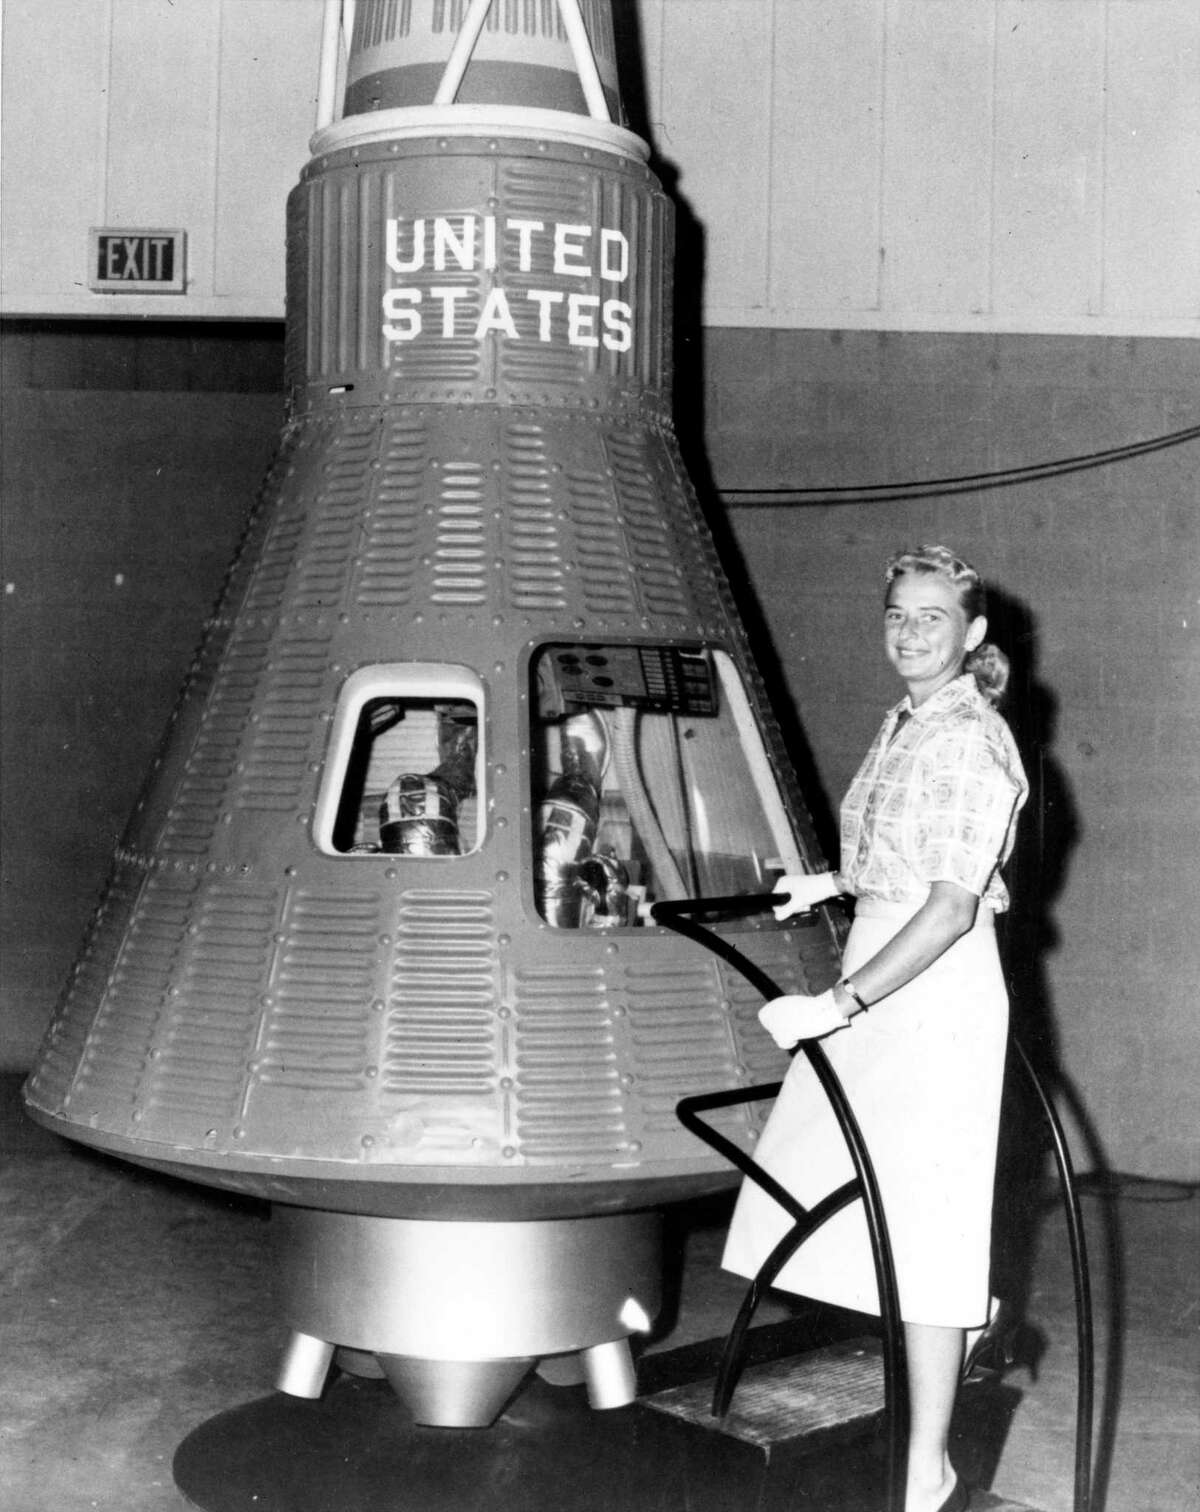 Jerrie Cobb poses next to a Mercury spaceship capsule. Cobb, along with 24 other women, underwent physical tests similar to those taken by the Mercury astronauts with the belief that she might become an astronaut trainee. All the women who participated in the program, known as First Lady Astronaut Trainees (FLAT), were skilled pilots. But the program was not sanctioned by NASA and was shuttered.